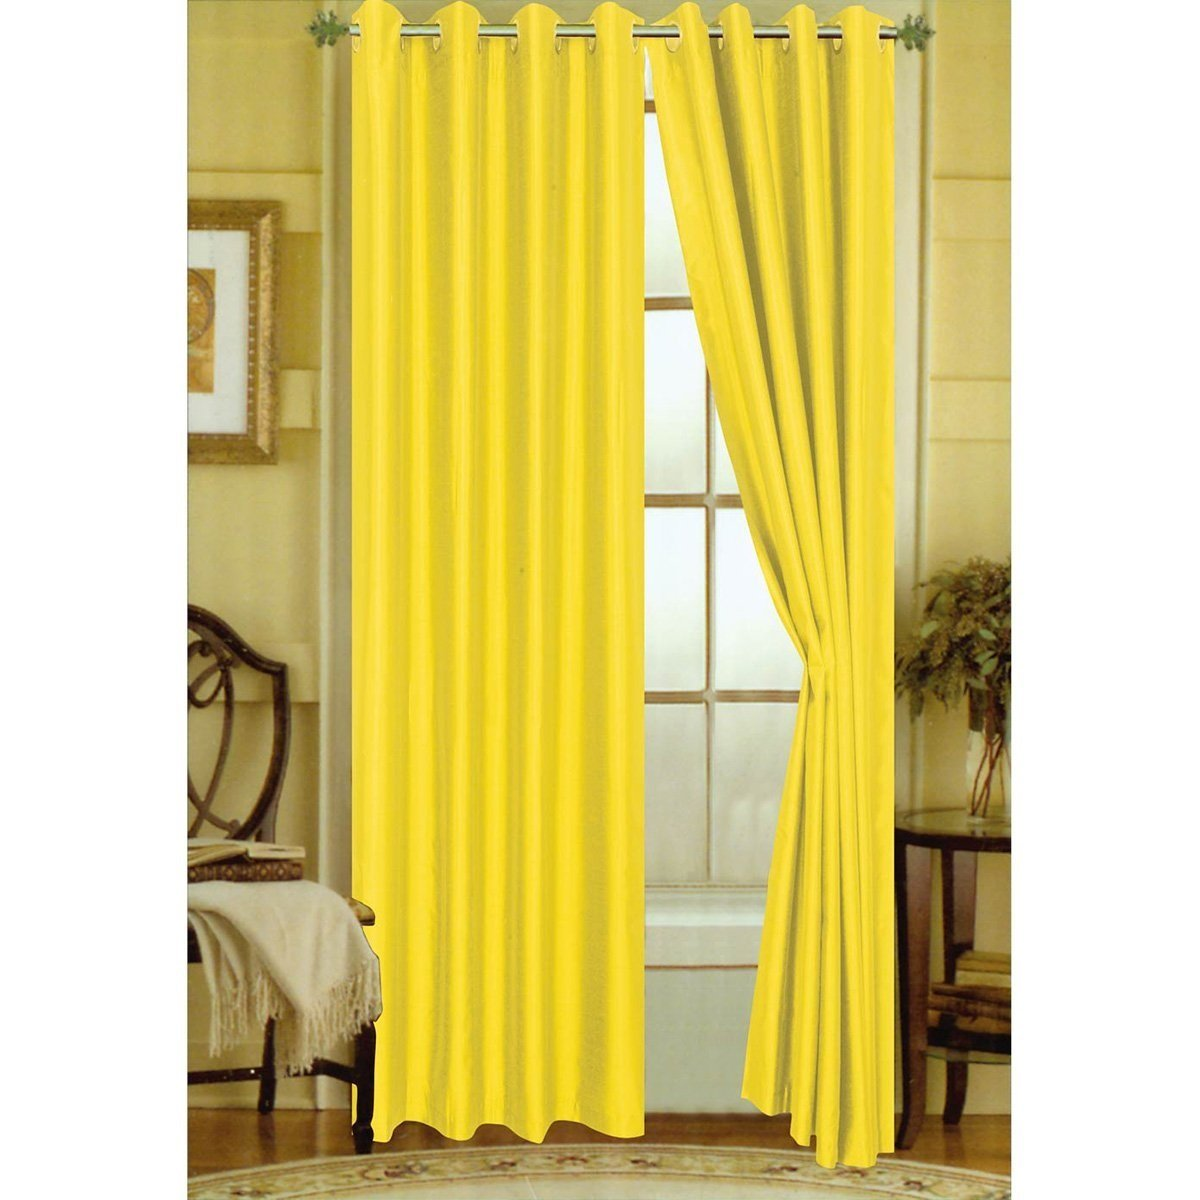 LuxuryDiscounts 2 Piece Solid Yellow Faux Silk Grommet Window Curtain Treatment Panel Drapes